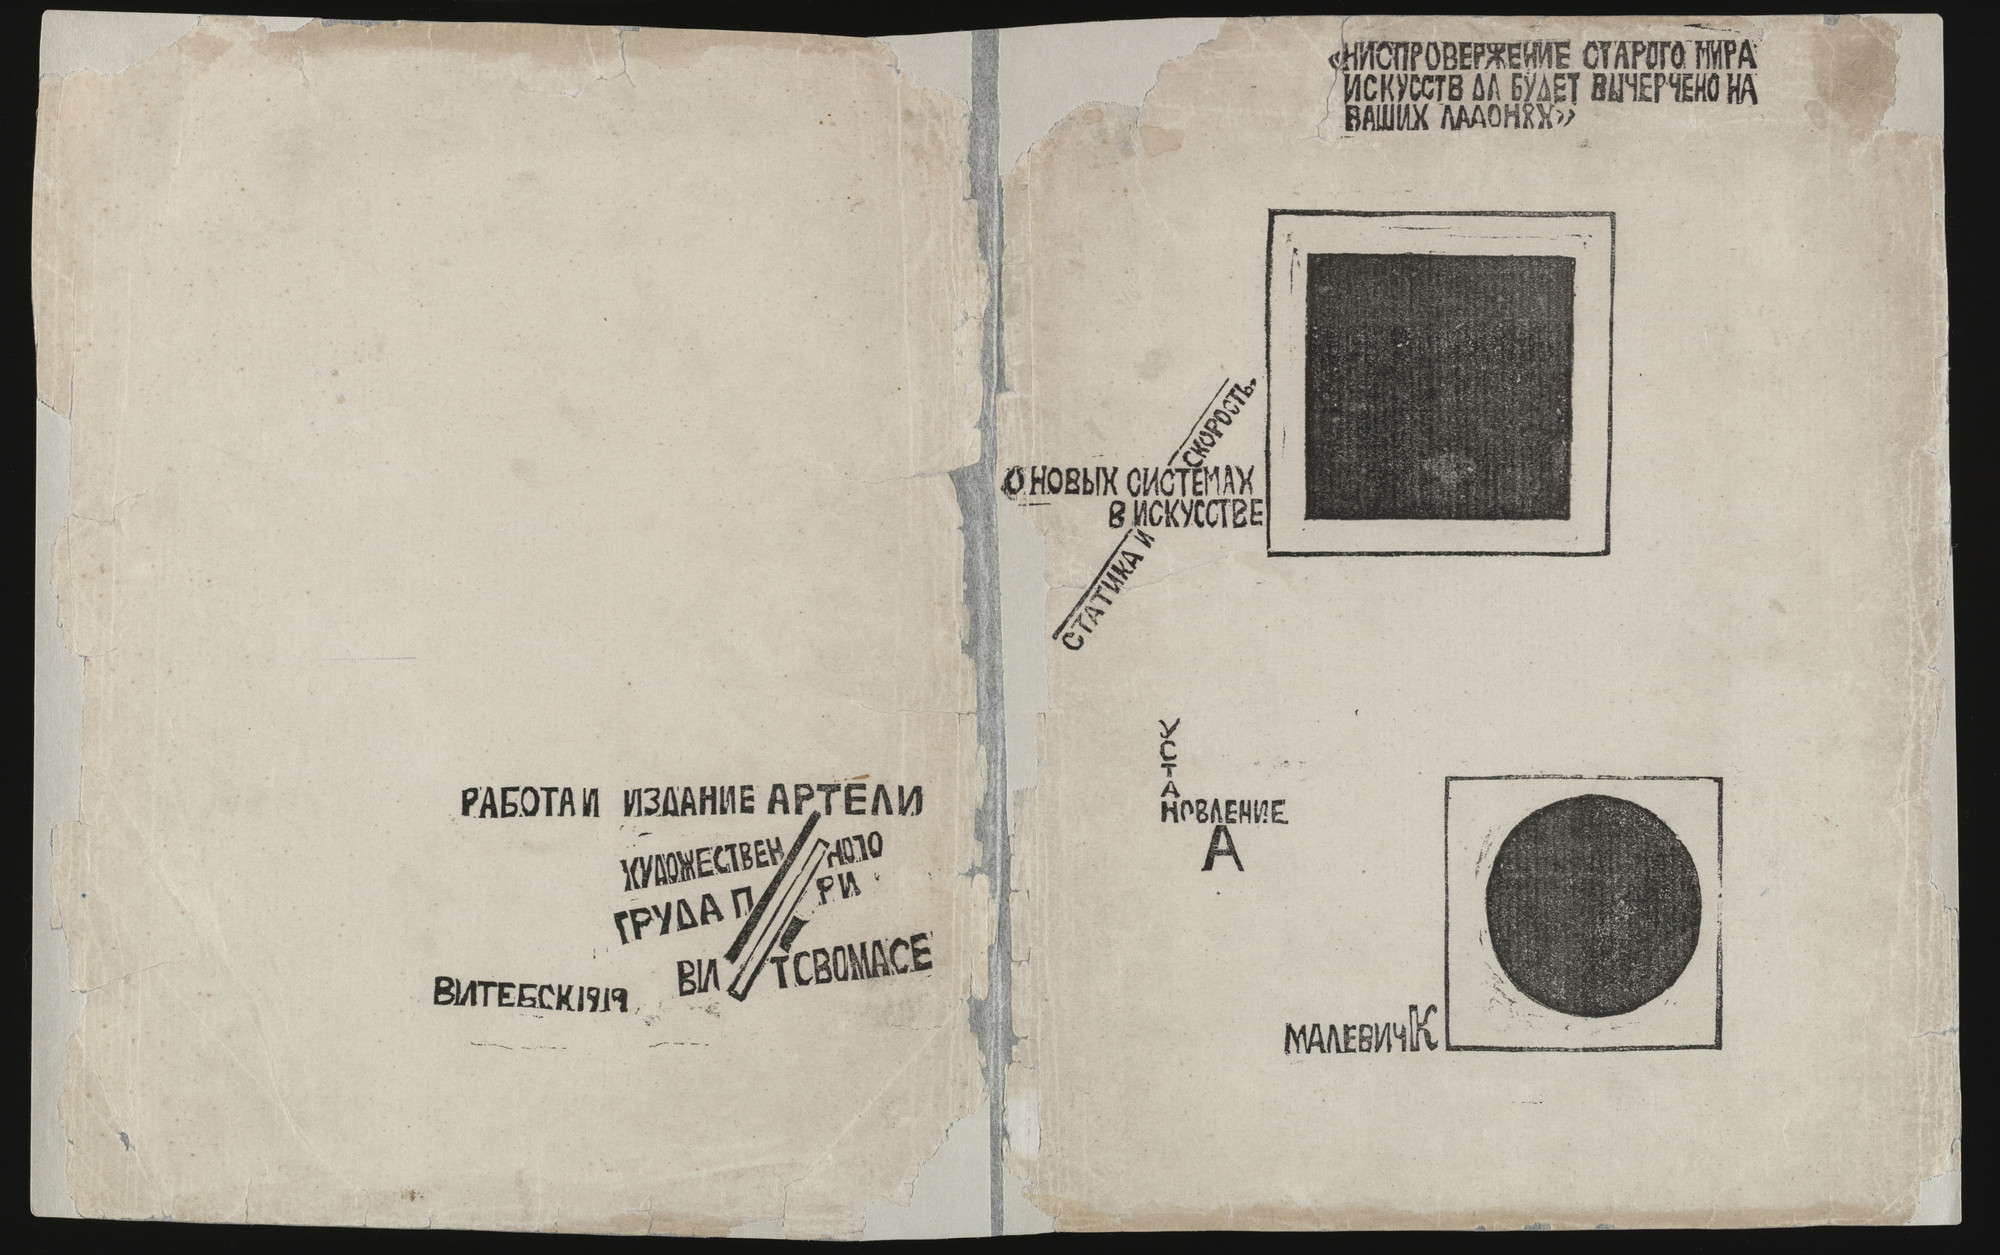 El Lissitzky, Kazimir Malevich. O novykh systemakh v iskusstve. Statika i skorost' ( On New Systems in Art: Statics and Speed ). 1919